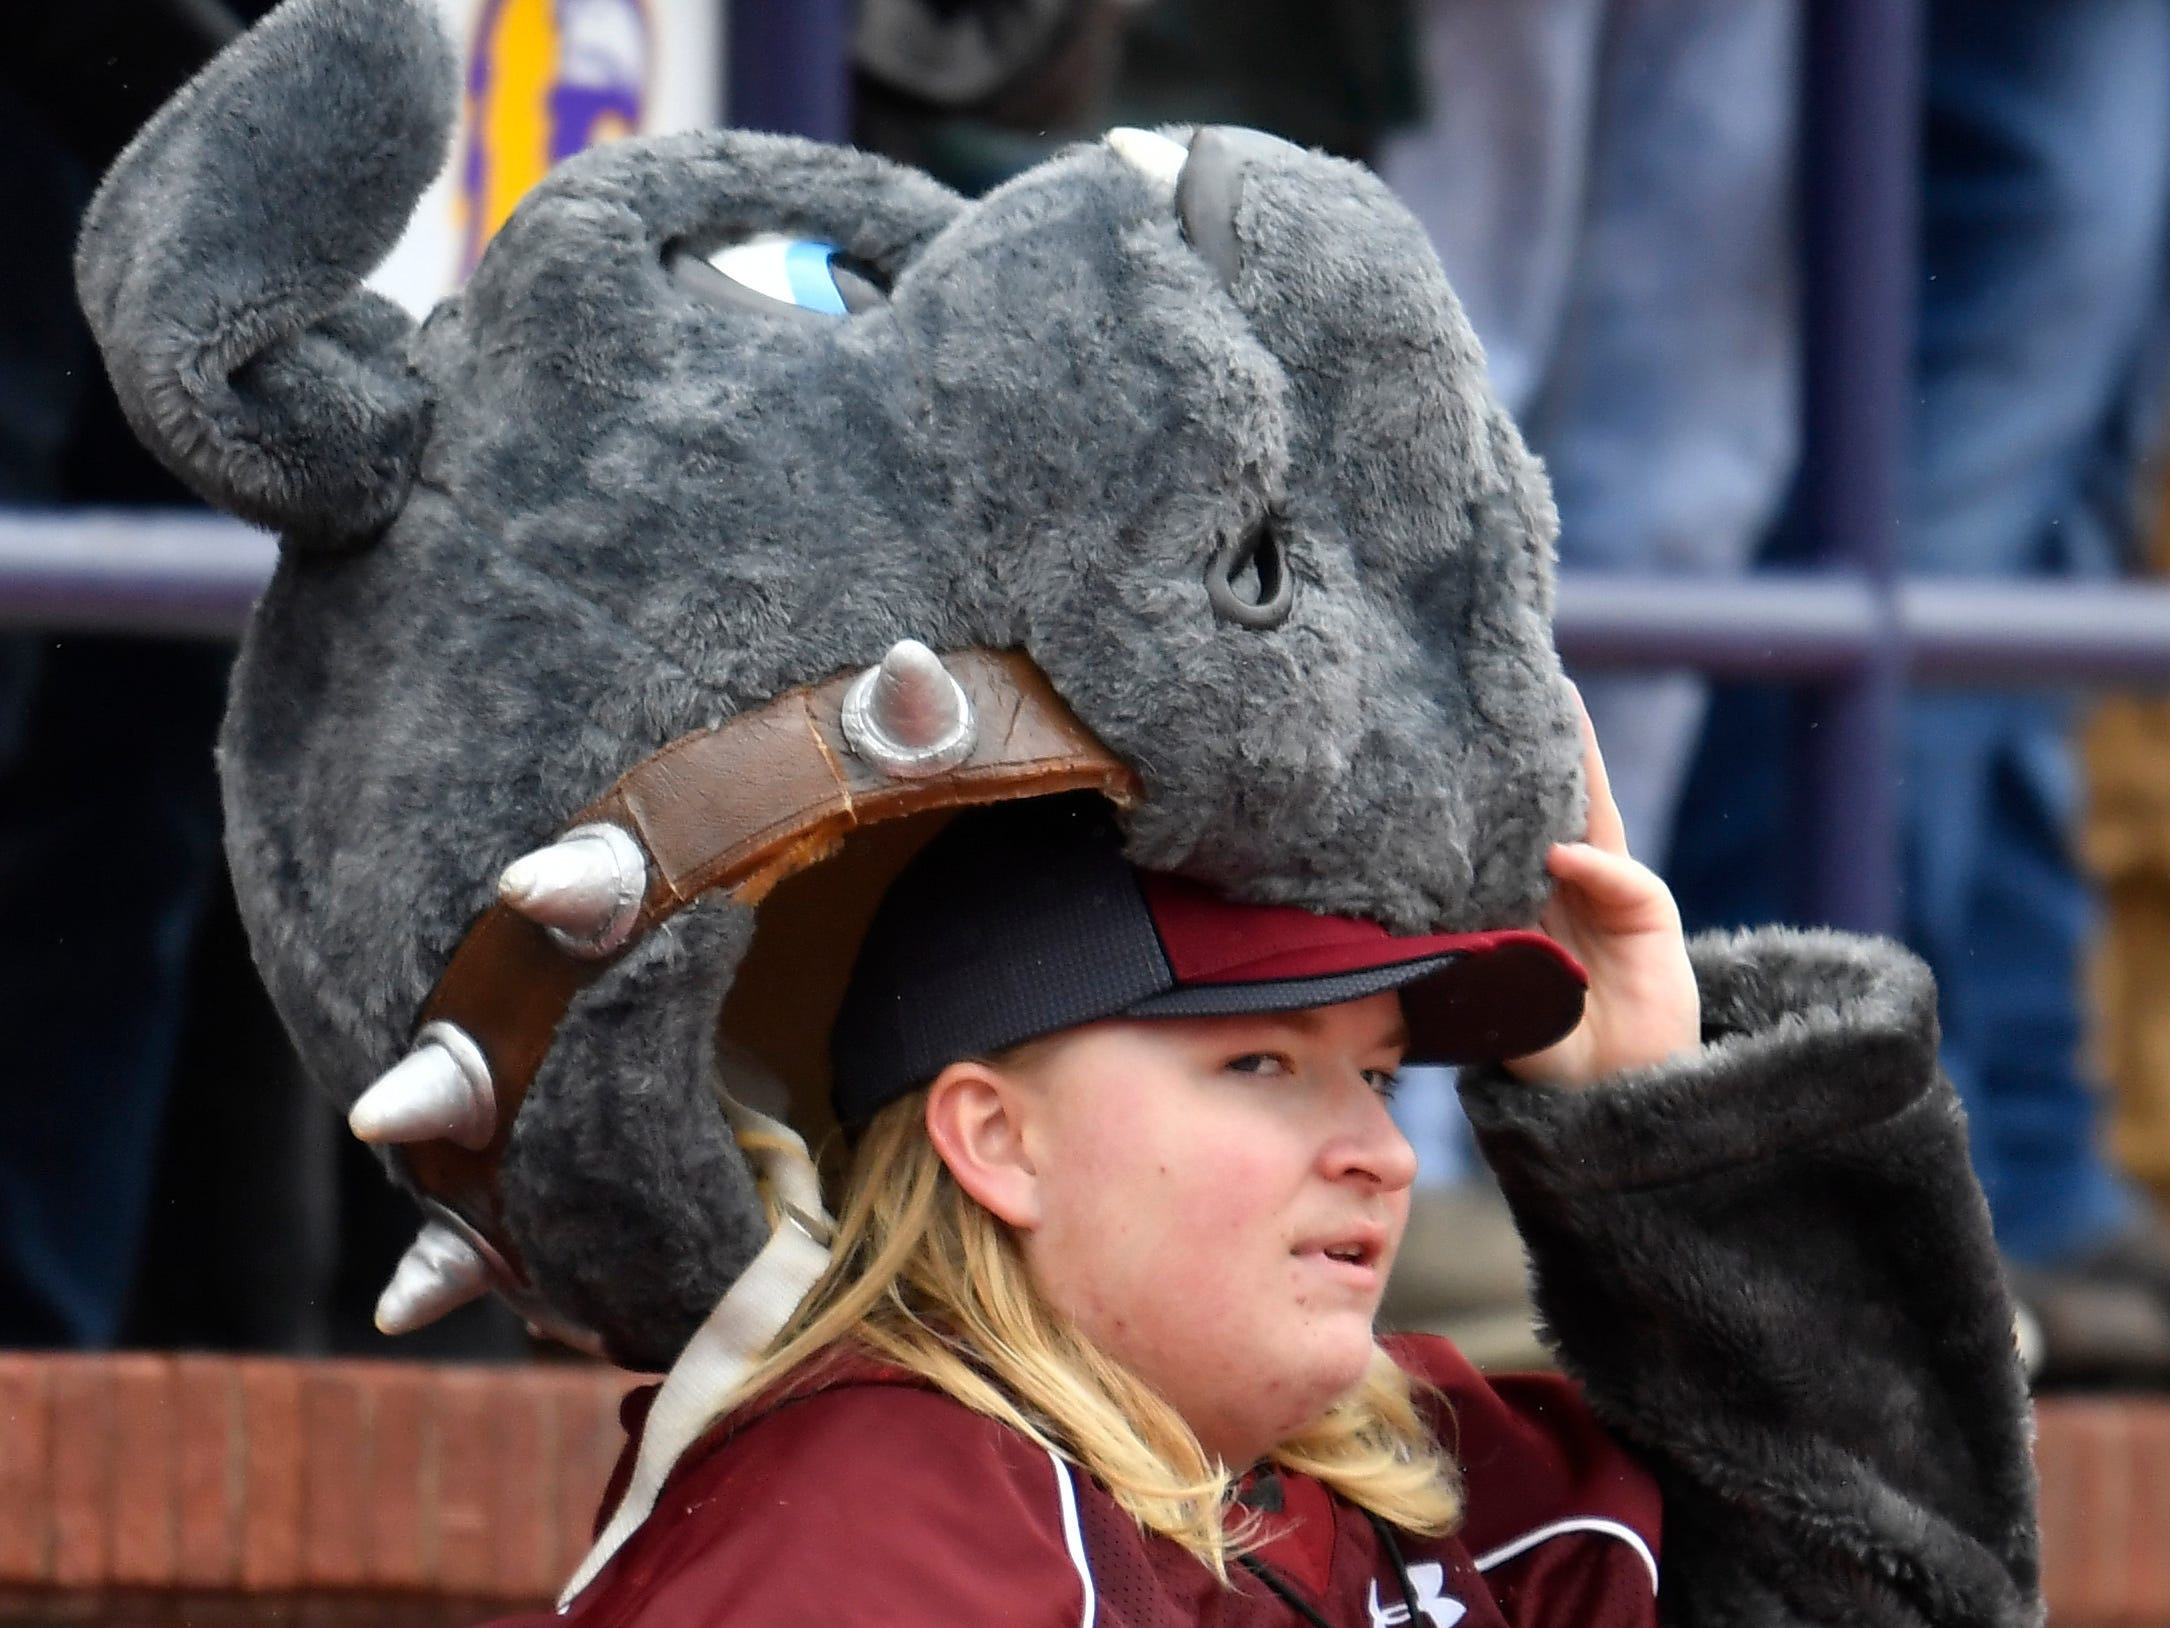 Cornersville's mascot watches the game at the Class I-A BlueCross Bowl state championship at Tennessee Tech's Tucker Stadium in Cookeville, Tenn., on Saturday, Dec. 1, 2018.